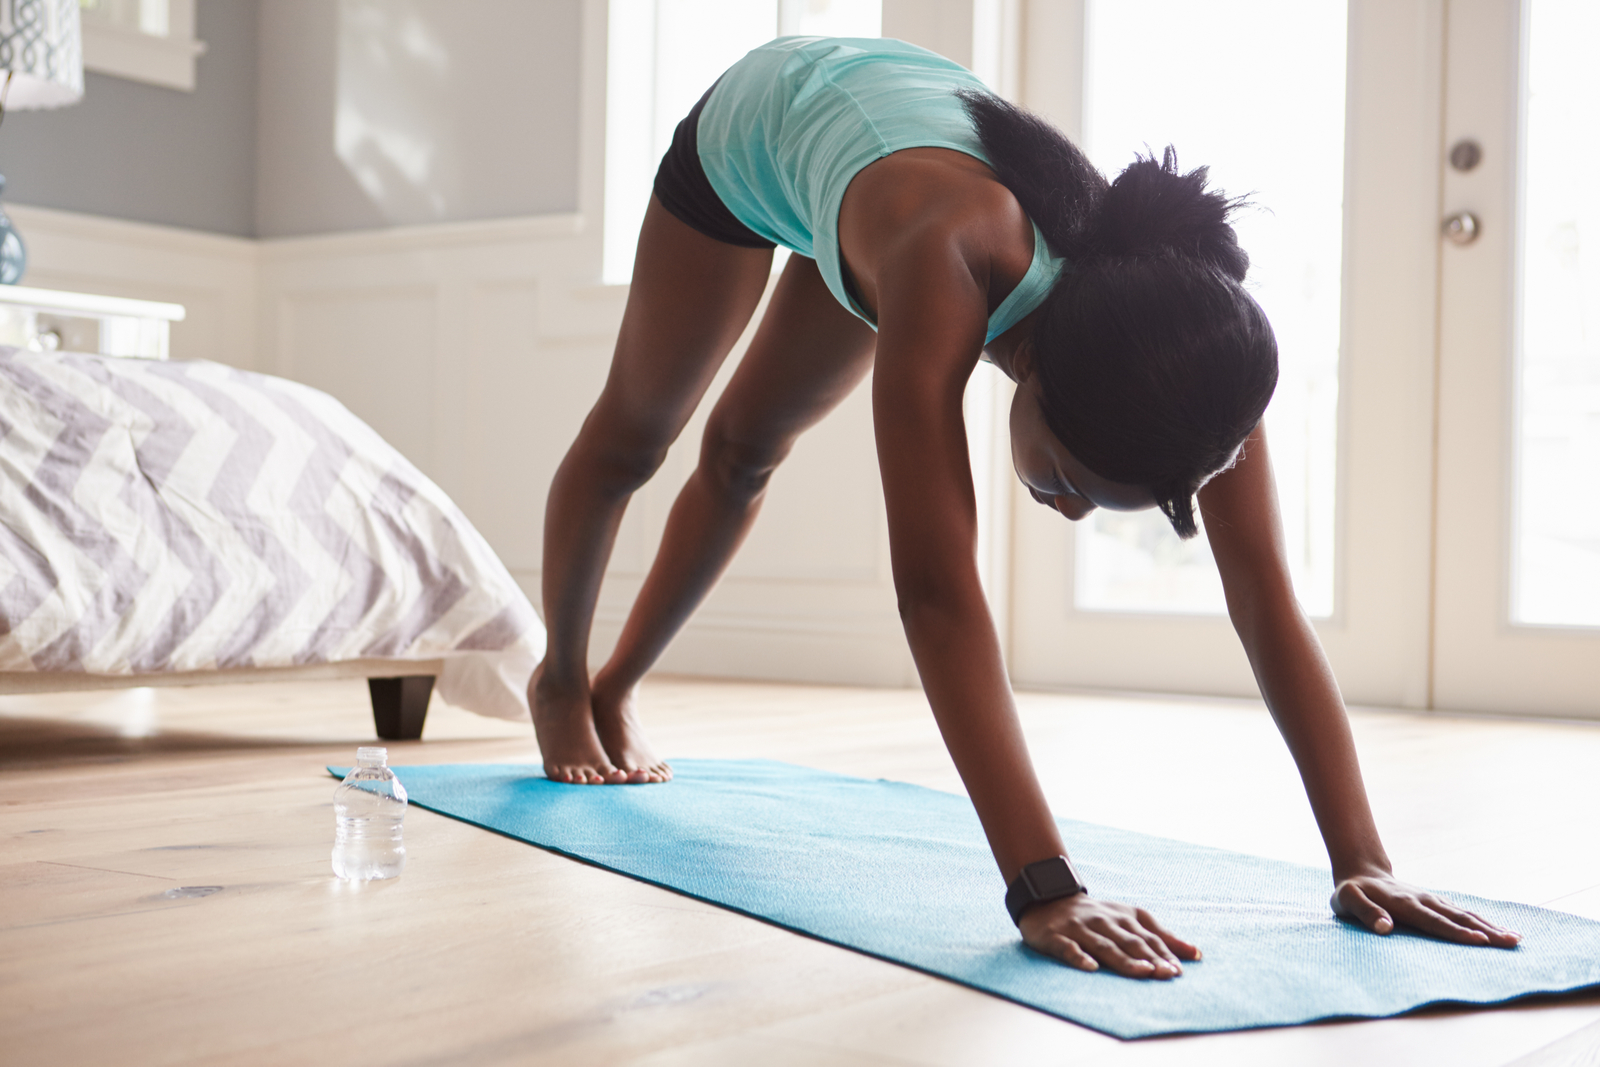 Get Rid of Distractions | 10 Easy Yoga Tips To Get The Most Out Of Your Practice